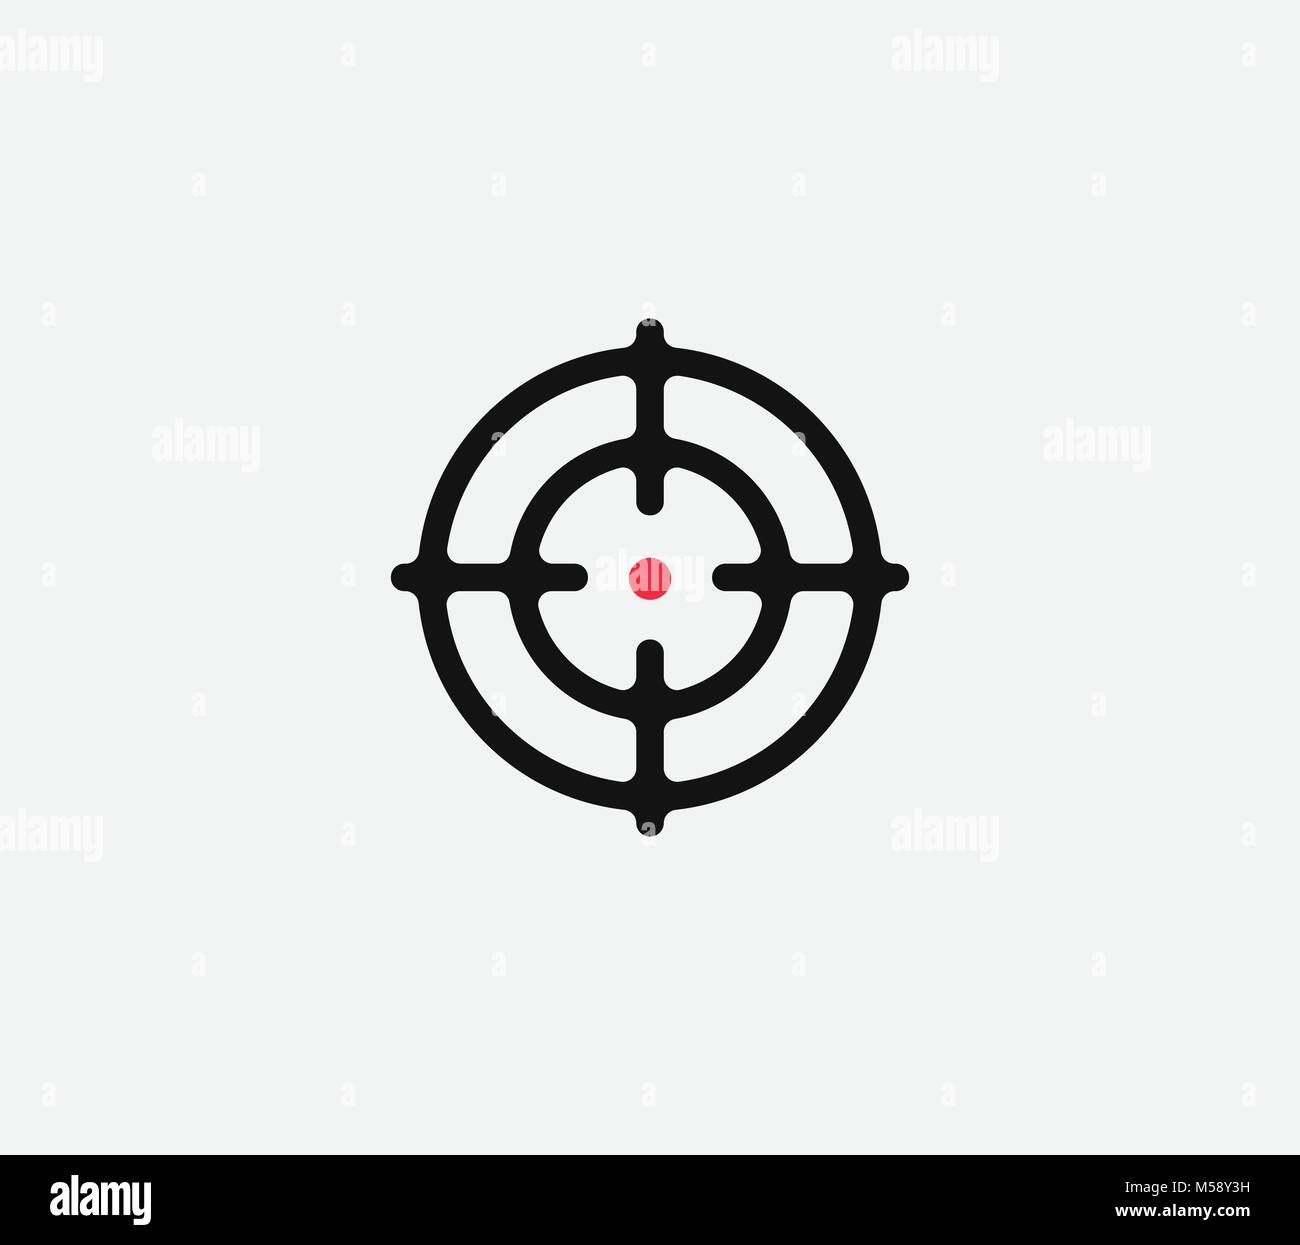 Aim vector linear stylized icon goal abstract sign target symbol aim vector linear stylized icon goal abstract sign target symbol gun business logo buycottarizona Image collections